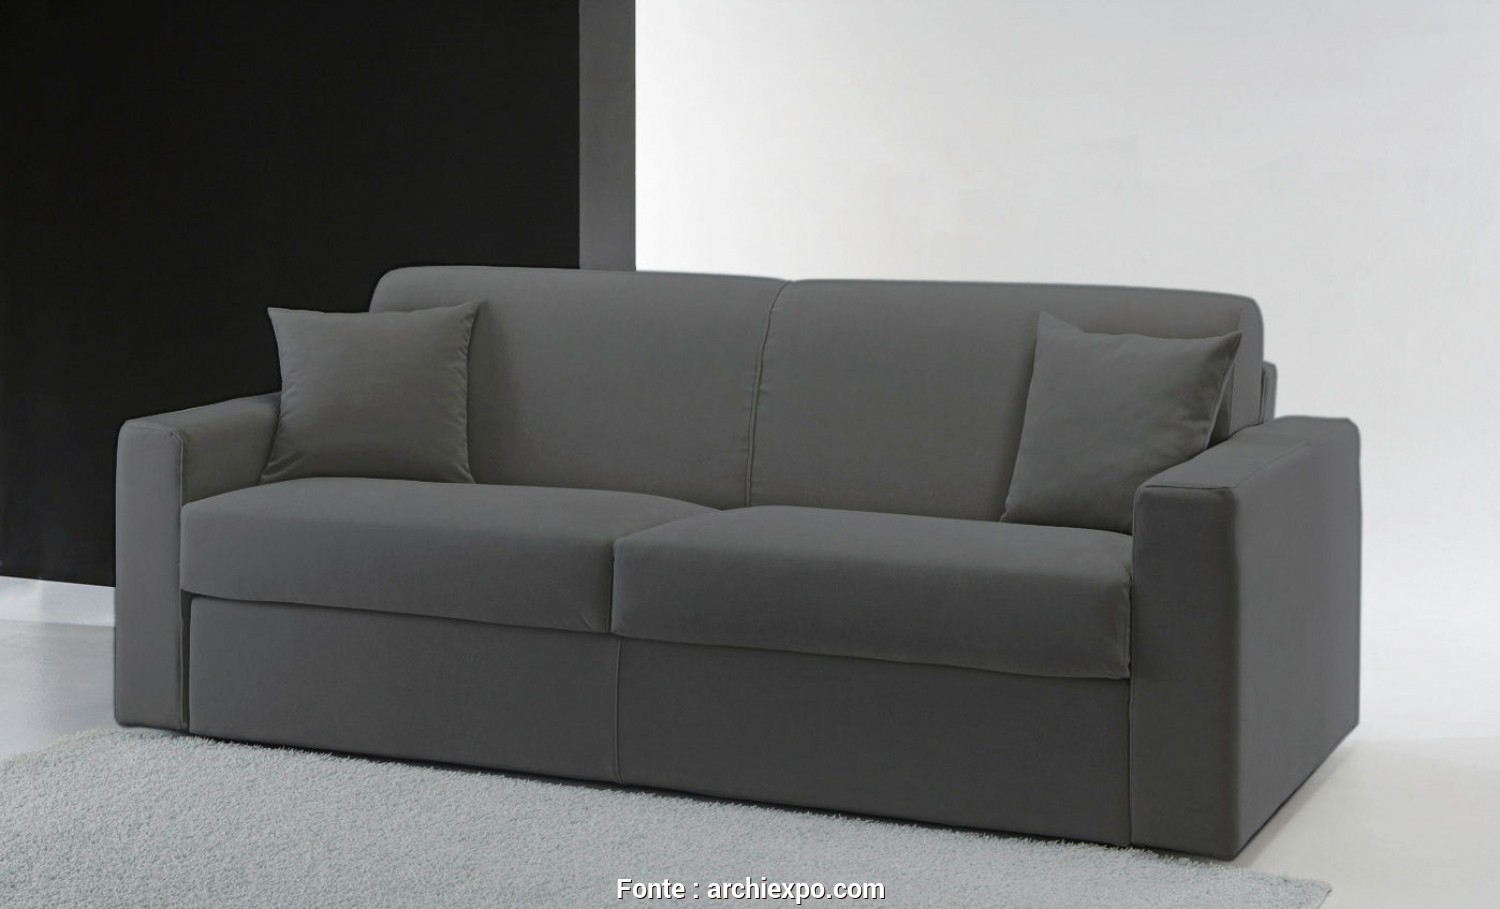 Divani Santambrogio Lissone, Esclusivo Sofa, / Contemporary / Leather / 2-Person, SONDRIO : ROMA